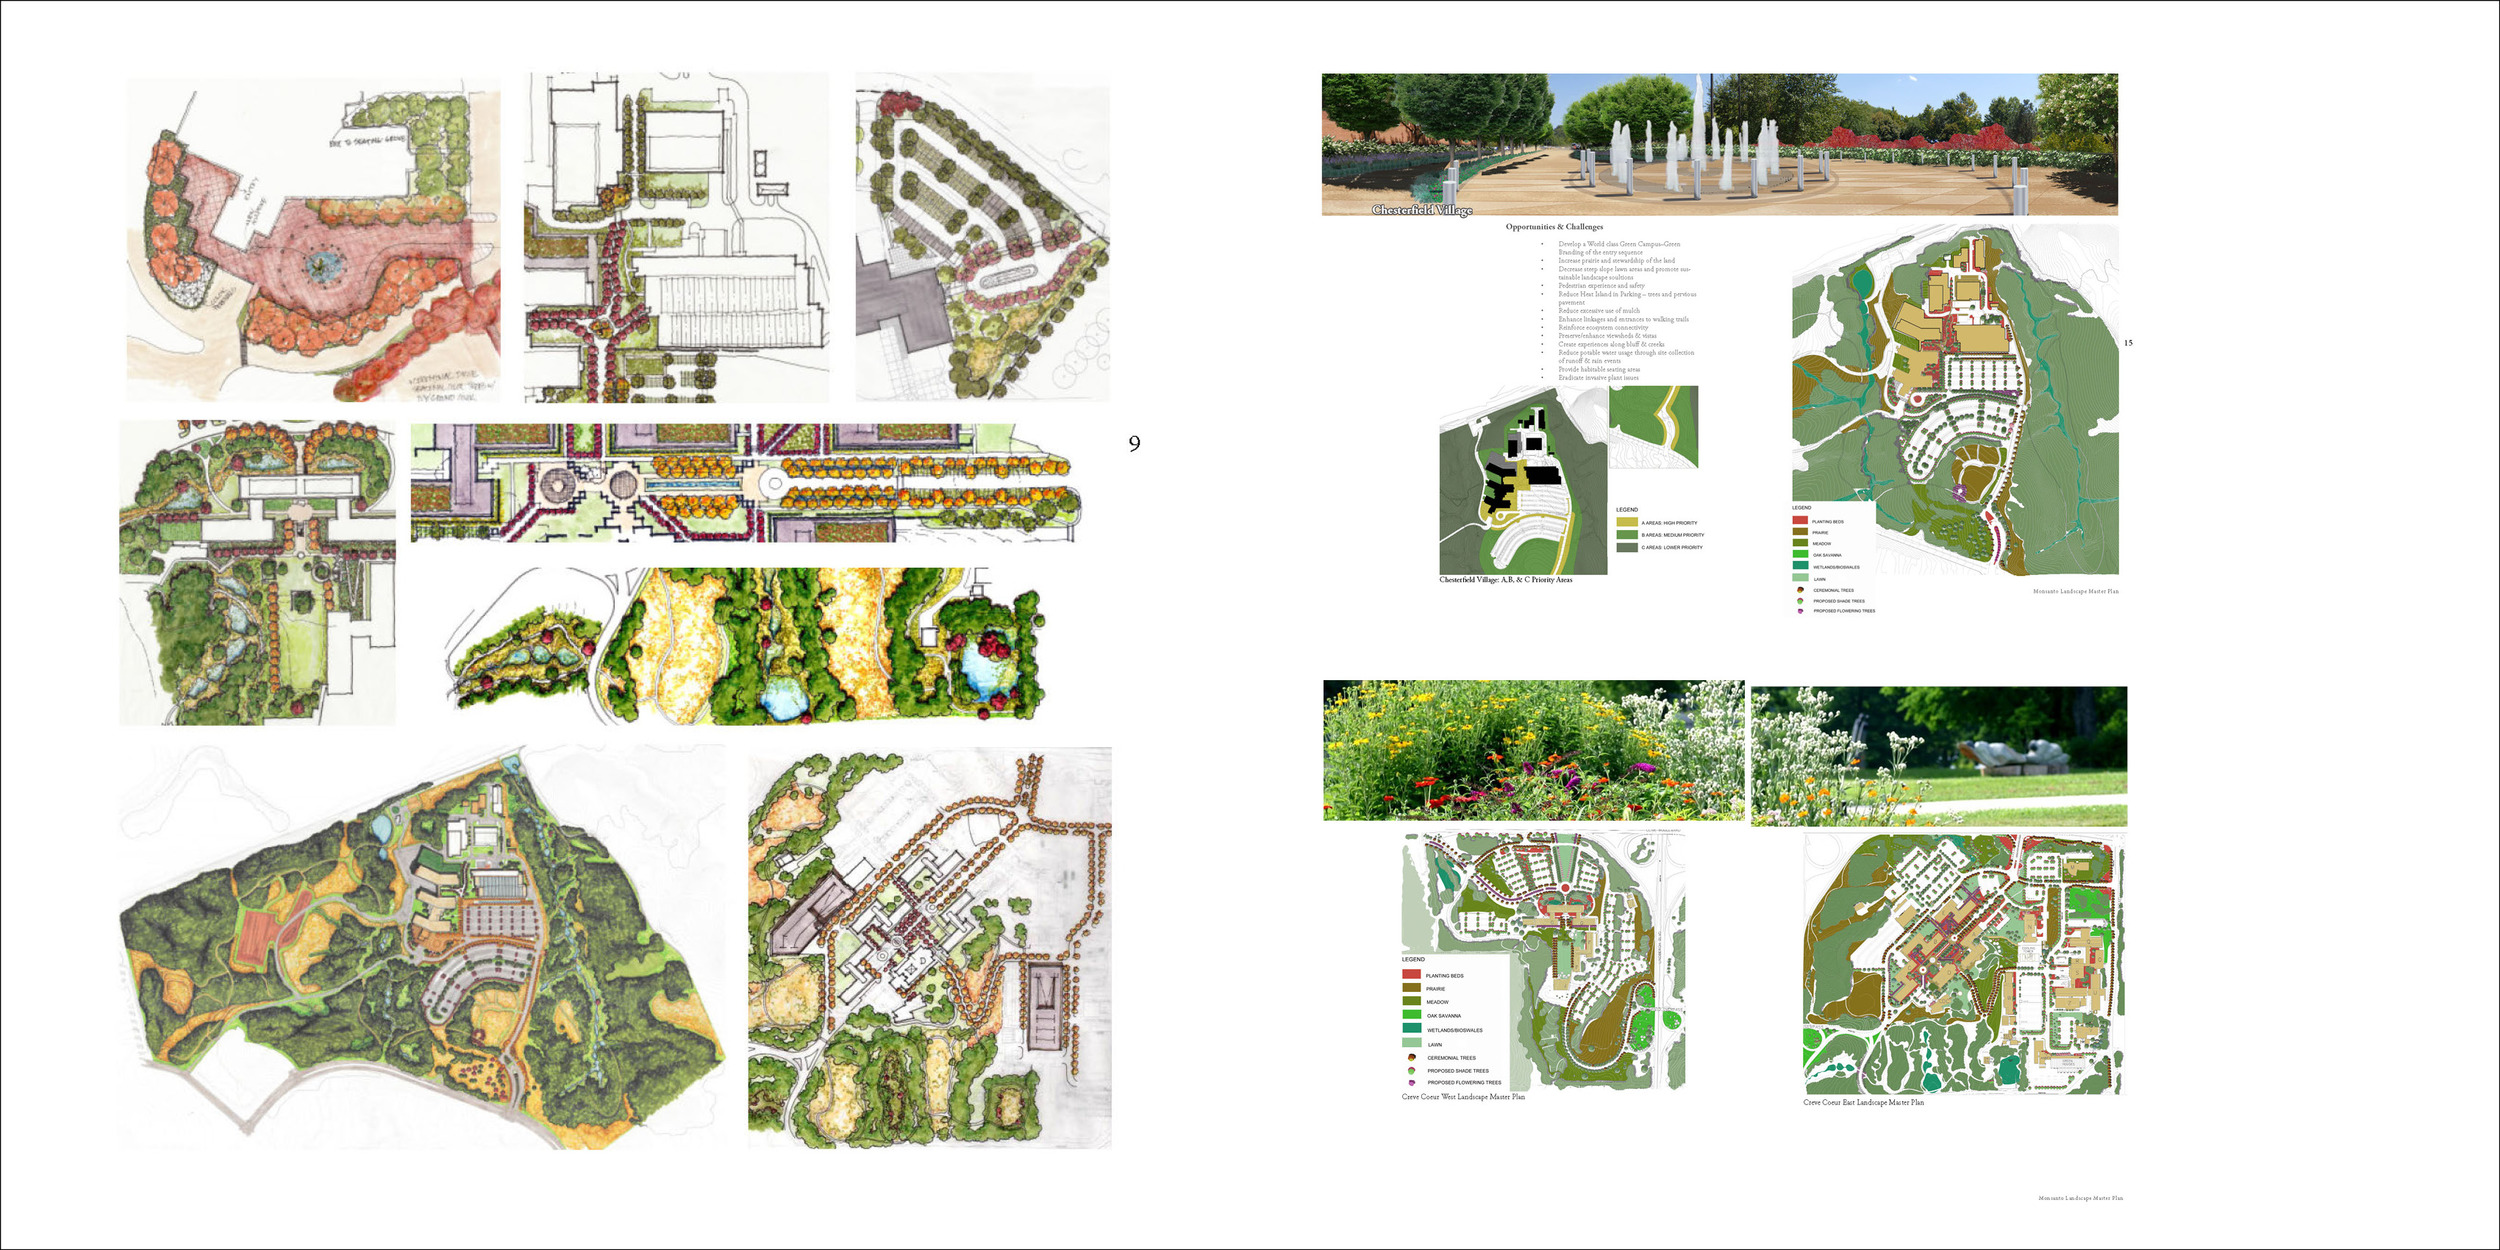 monsanto chesterfield campus map Monsanto Campus Landscape Master Plan H3 Studio monsanto chesterfield campus map